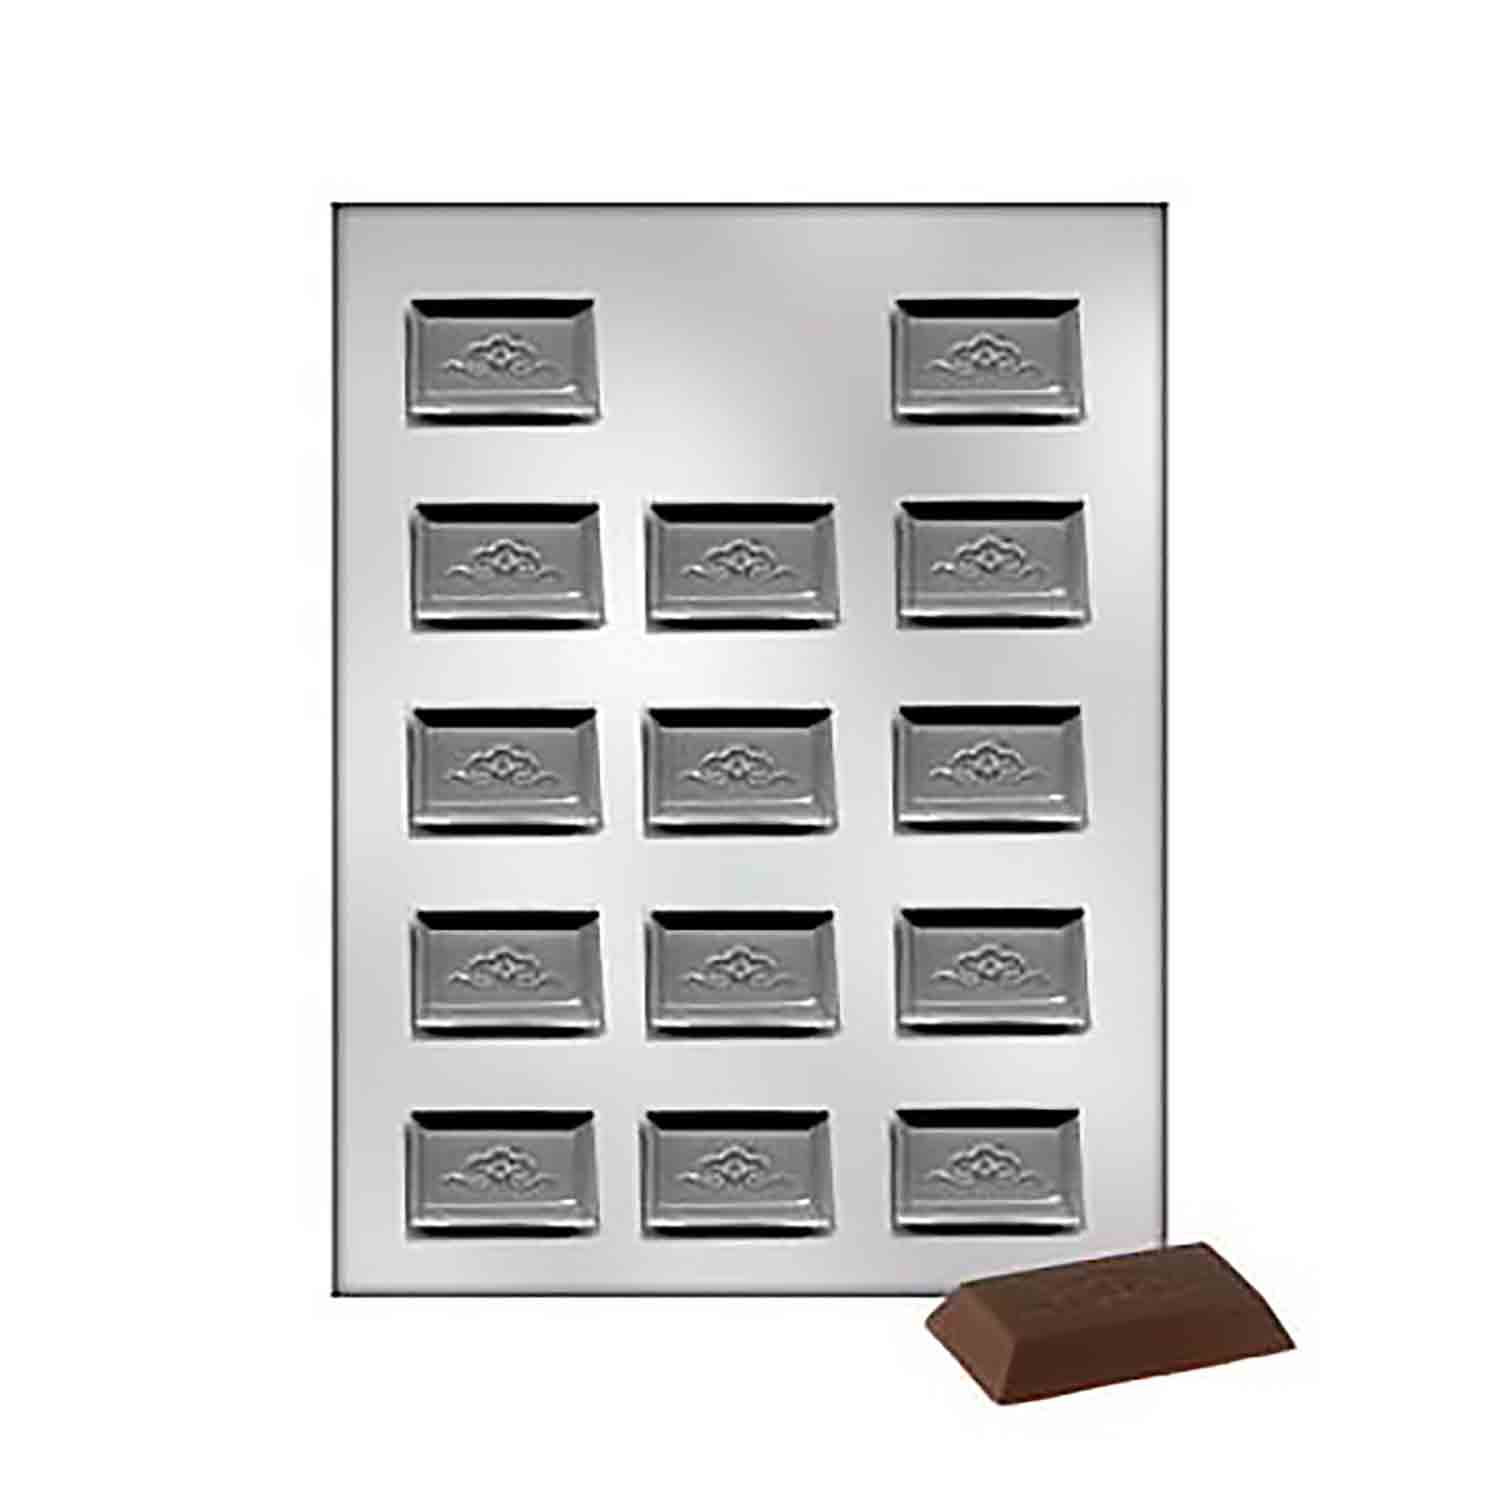 Rectangle with Scroll Design Chocolate Candy Mold